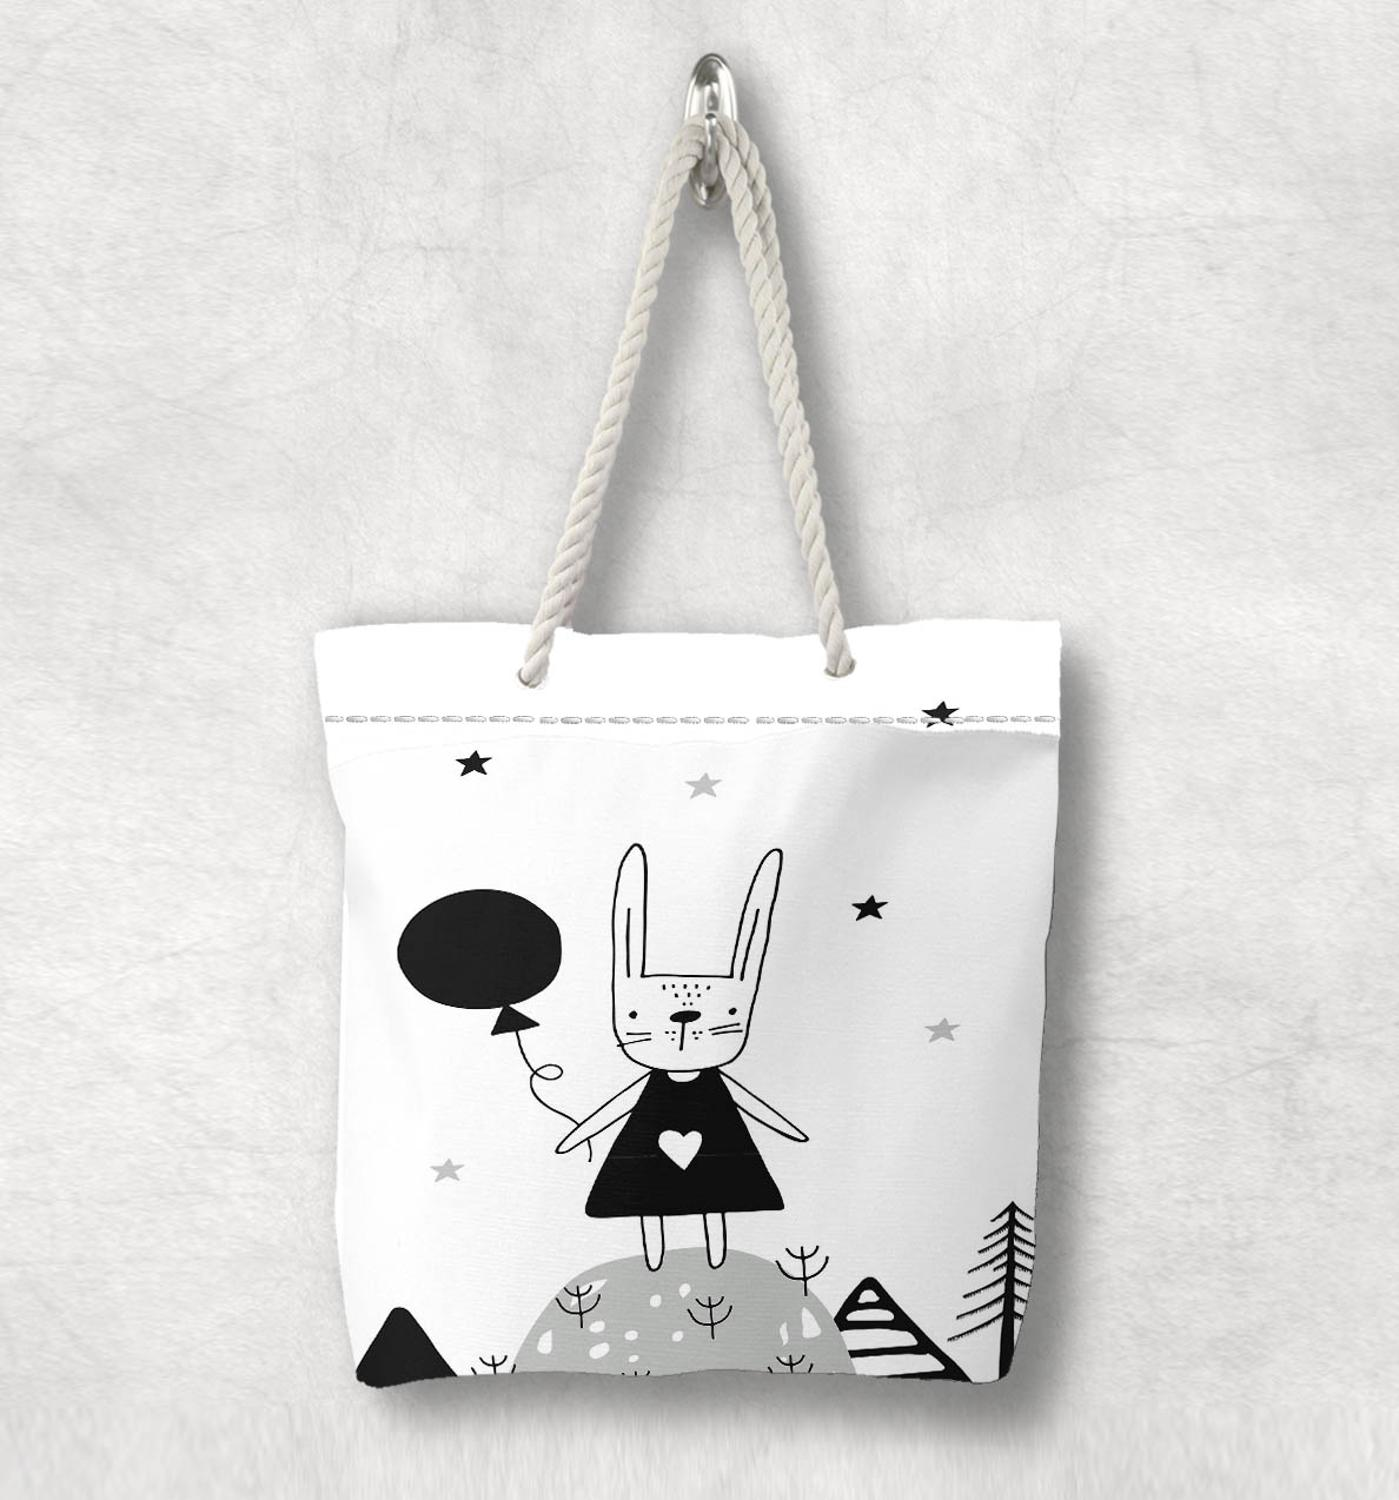 Else Black White Balloons Funny Cute Rabbit White Rope Handle Canvas Bag  Cartoon Print Zippered Tote Bag Shoulder Bag